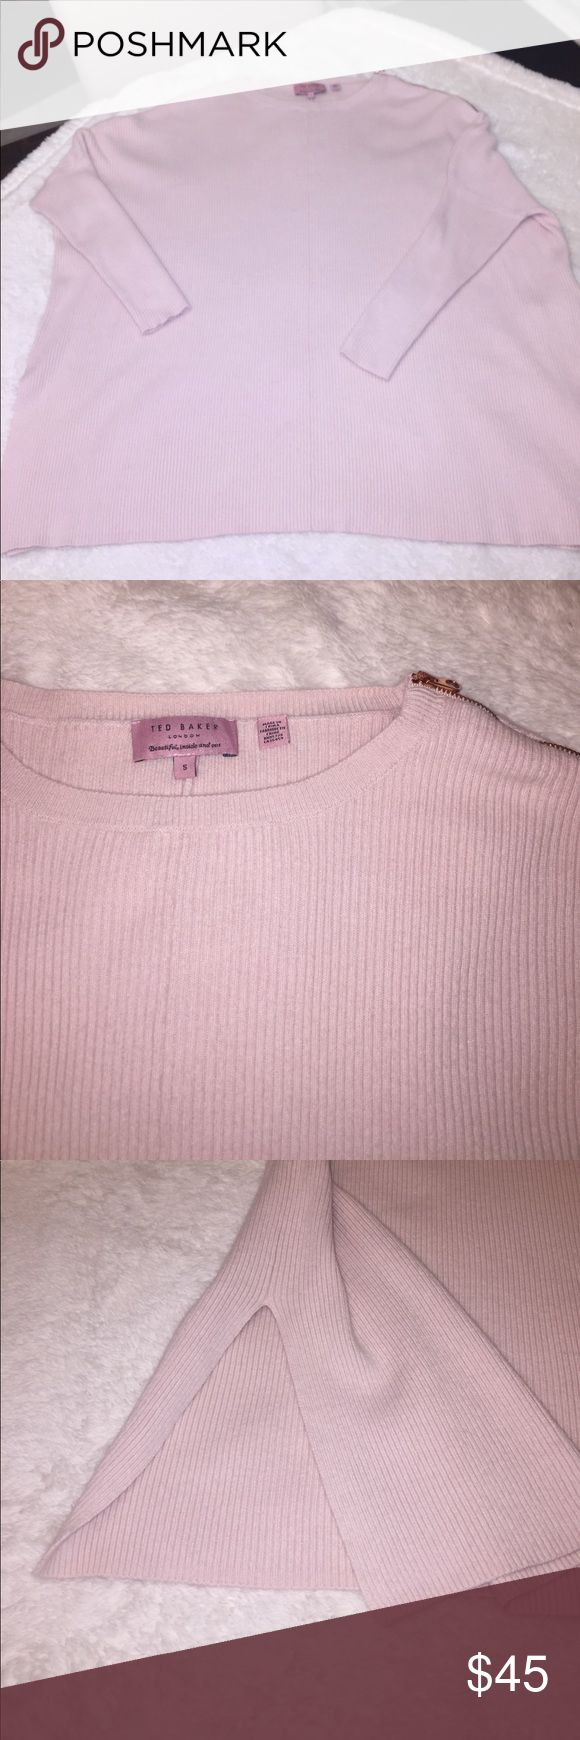 Ted Baker oversized sweater. Rose gold zipper. Size S but this is a very oversized sweater. The sleeves are small and dolman type. Has a 9 inch split on each side at the hip. Light blush pink. Very cute with leggings and uggs! Ted Baker London Sweaters Crew & Scoop Necks